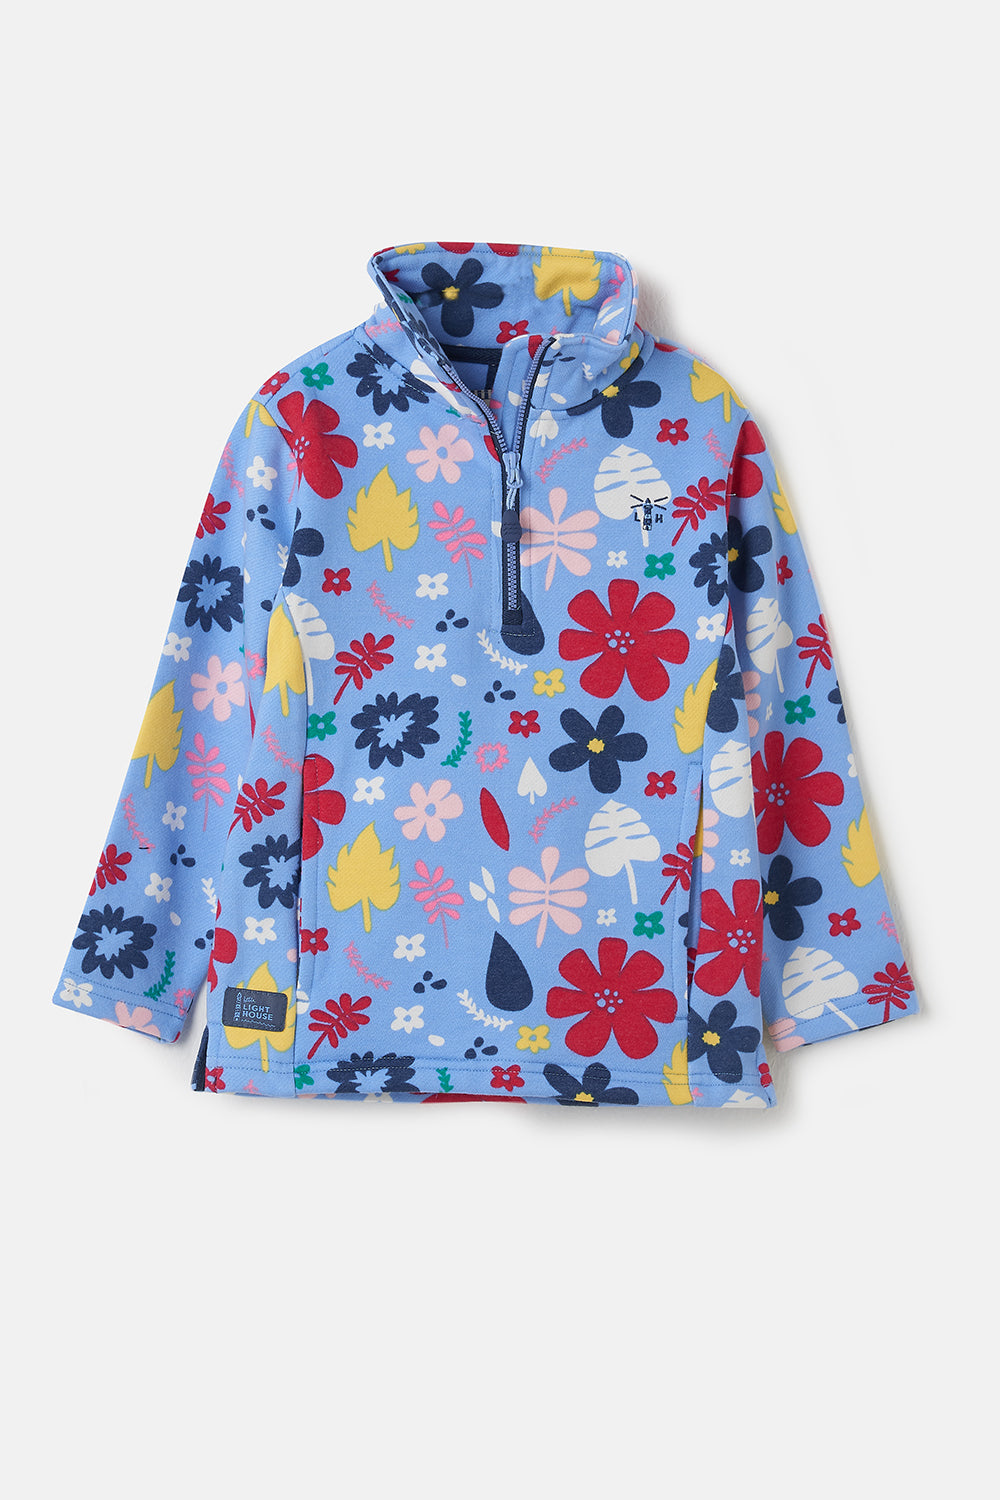 Lighthouse Robyn - Girl's Half Zip Sweatshirt - Light Blue Floral